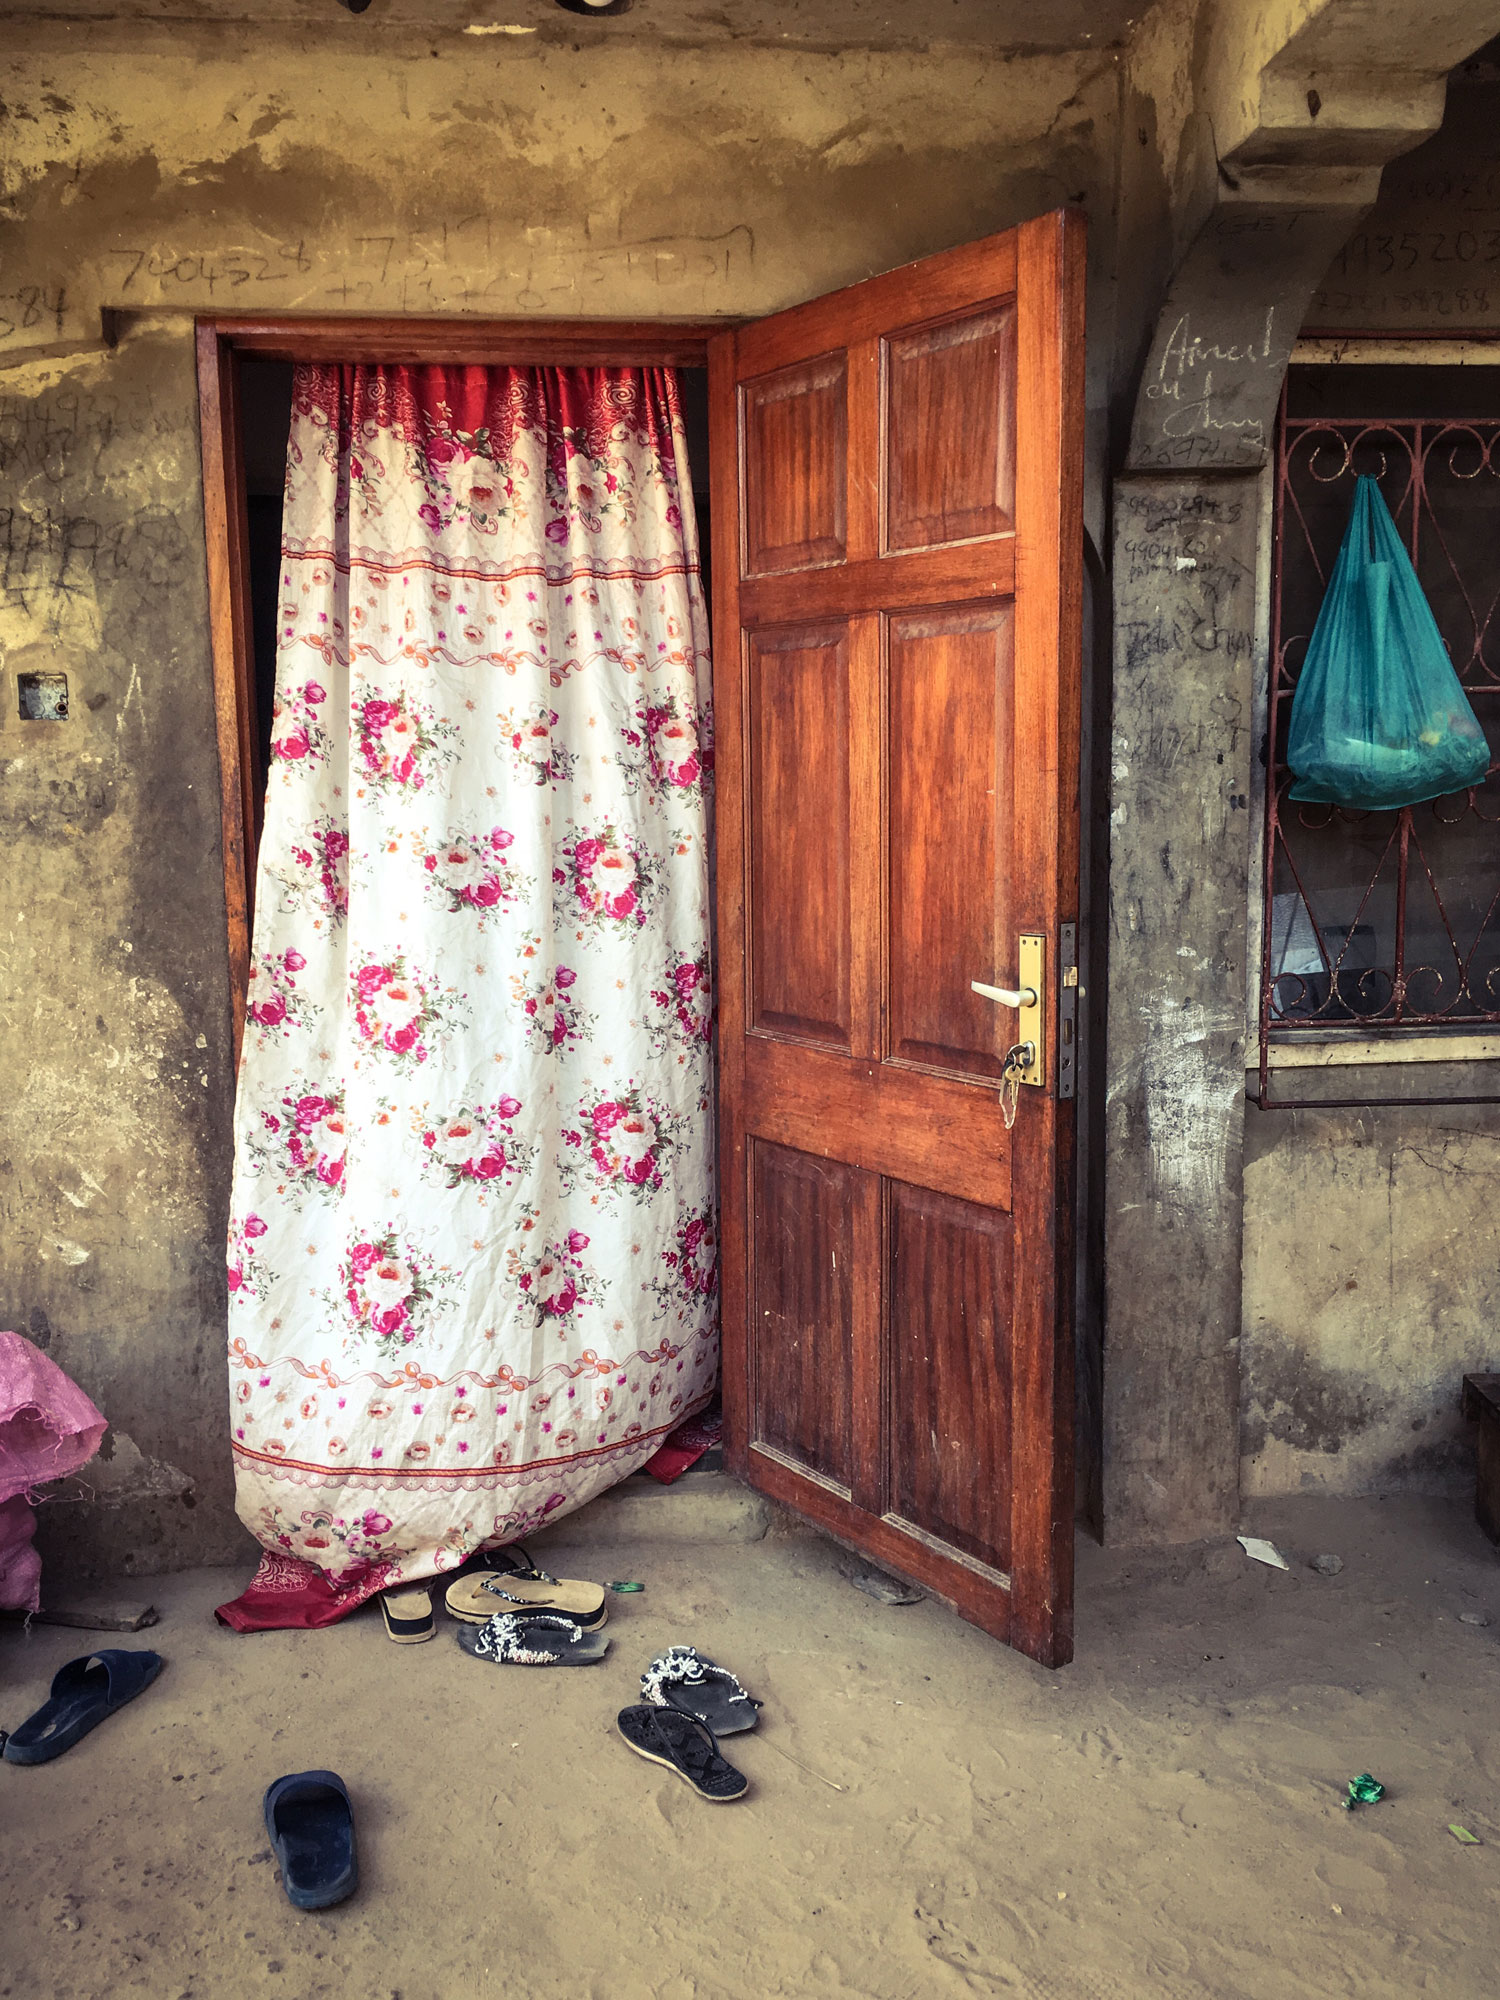 Stories Behind Doors, The Gambia, West Africa - the doorway to Mr. Chune's home. His 14 year old son was shot dead by Gambia security forces April 10th, 2000 © Helen Jones-Florio